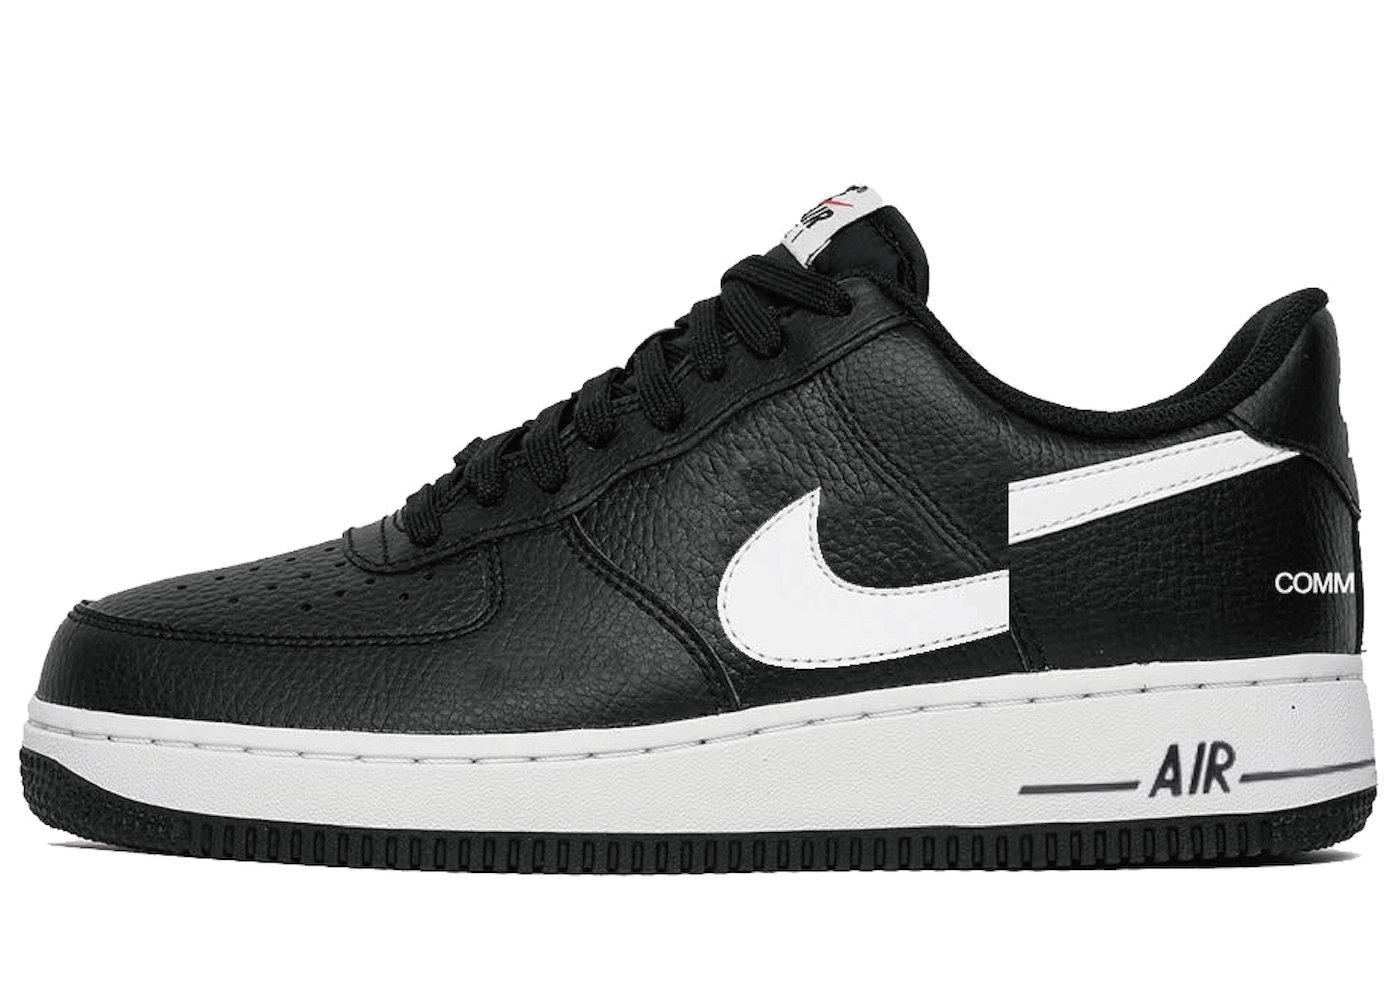 hot sales 970b8 36aed Nike Air Force 1 Low Supreme x Comme des Garcons (2018)